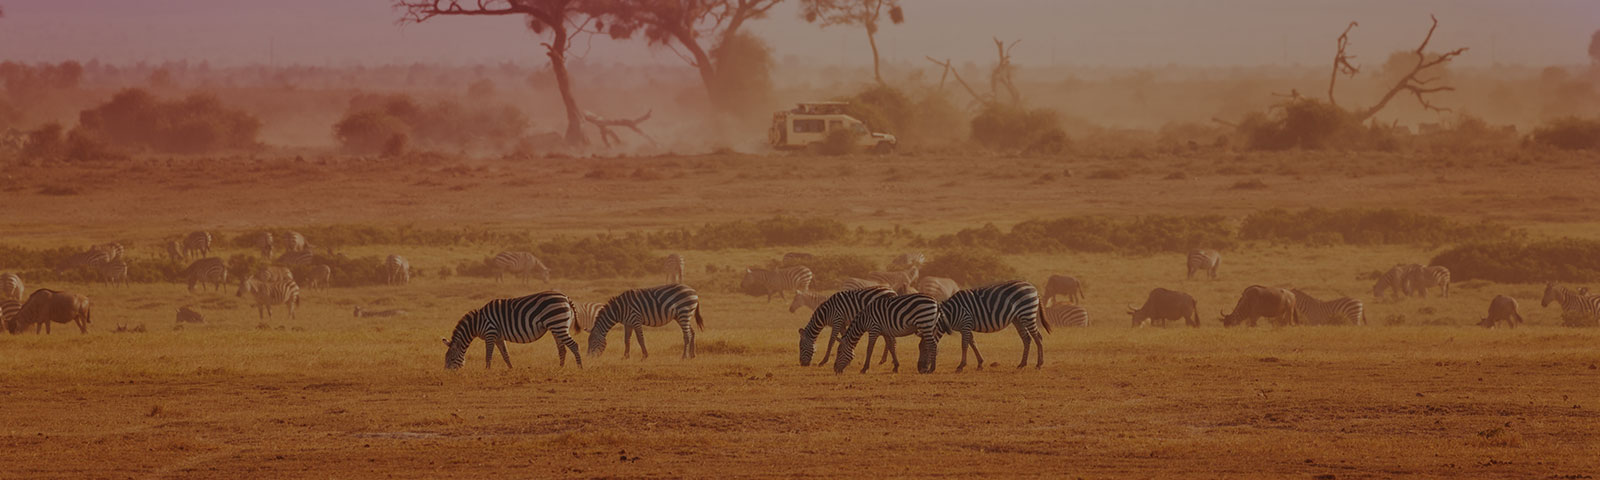 zebras grazing on a wildlife preserve